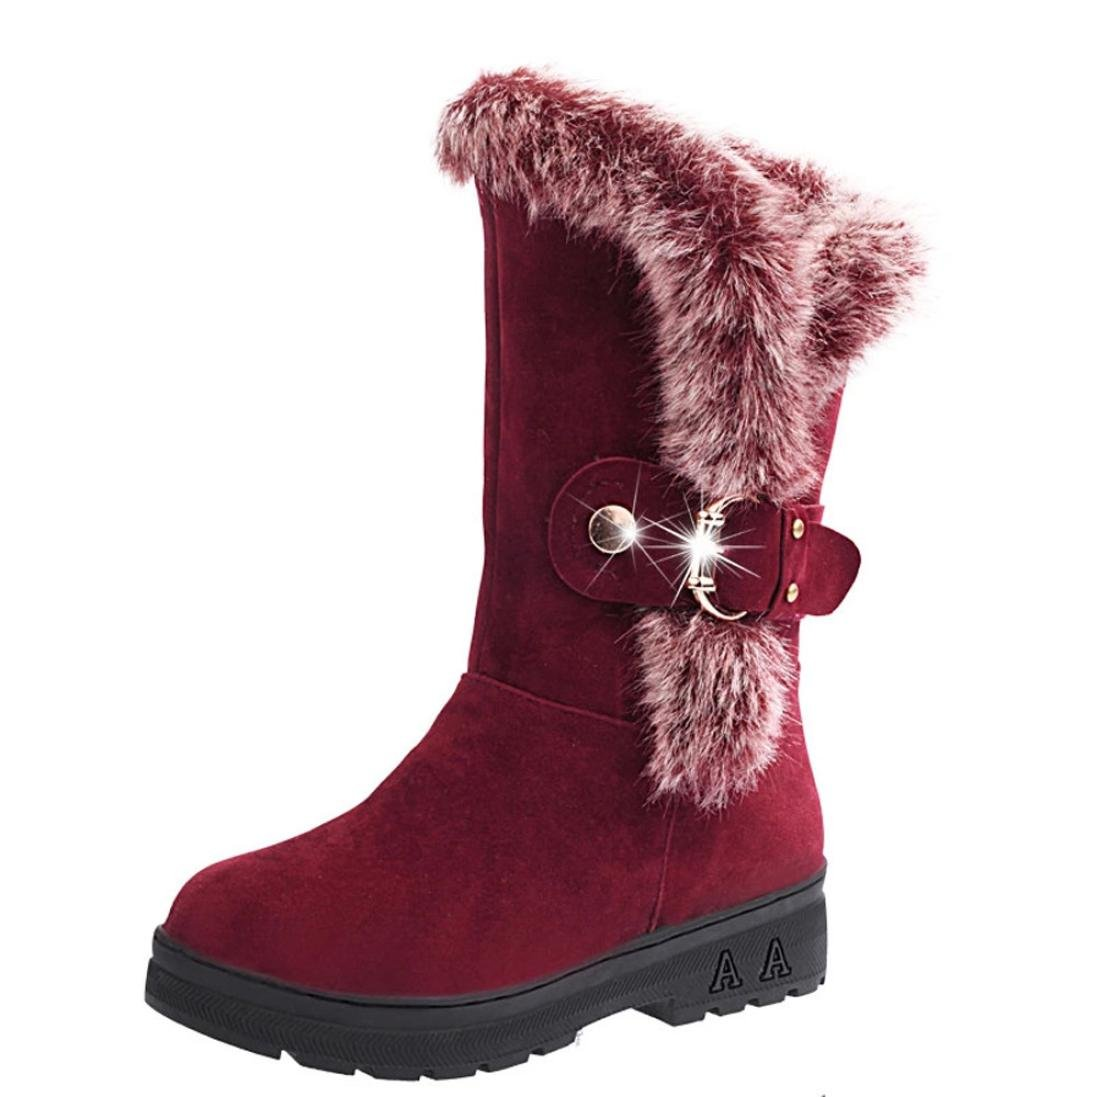 TOPUNDER Women Boots Slip-On Soft Snow Shoes Round Toe Flat Winter Fur Ankle Boots